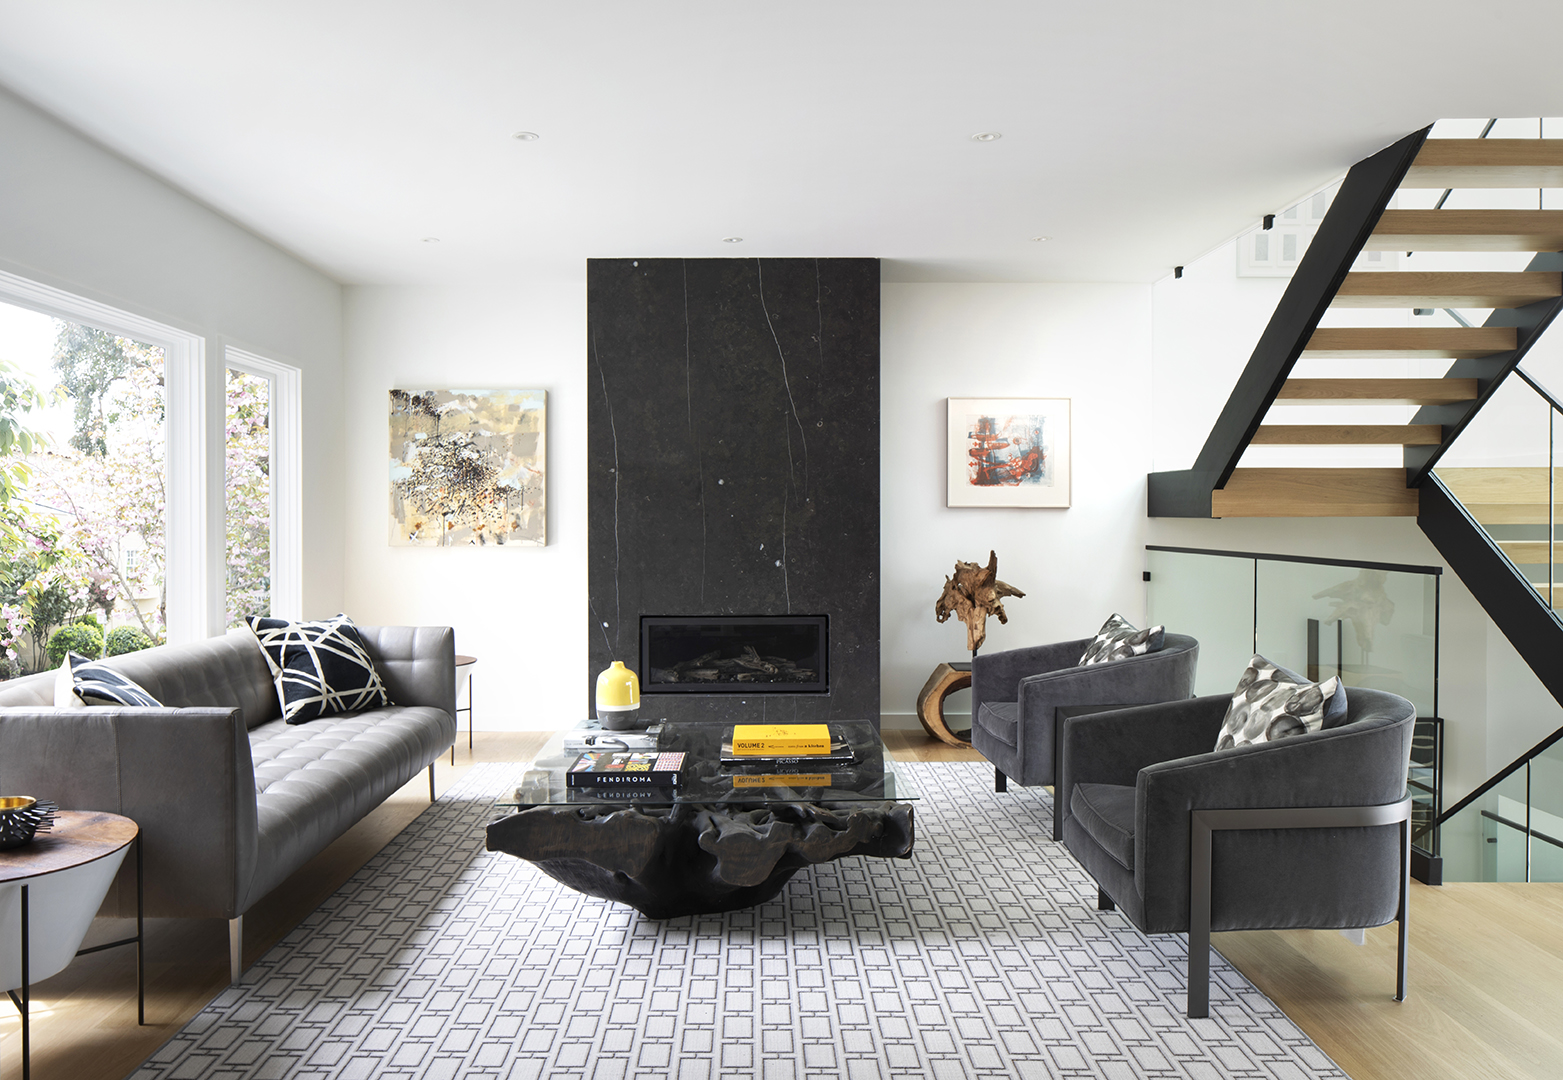 19th Street House in San Francisco, CA by John Lum Architecture